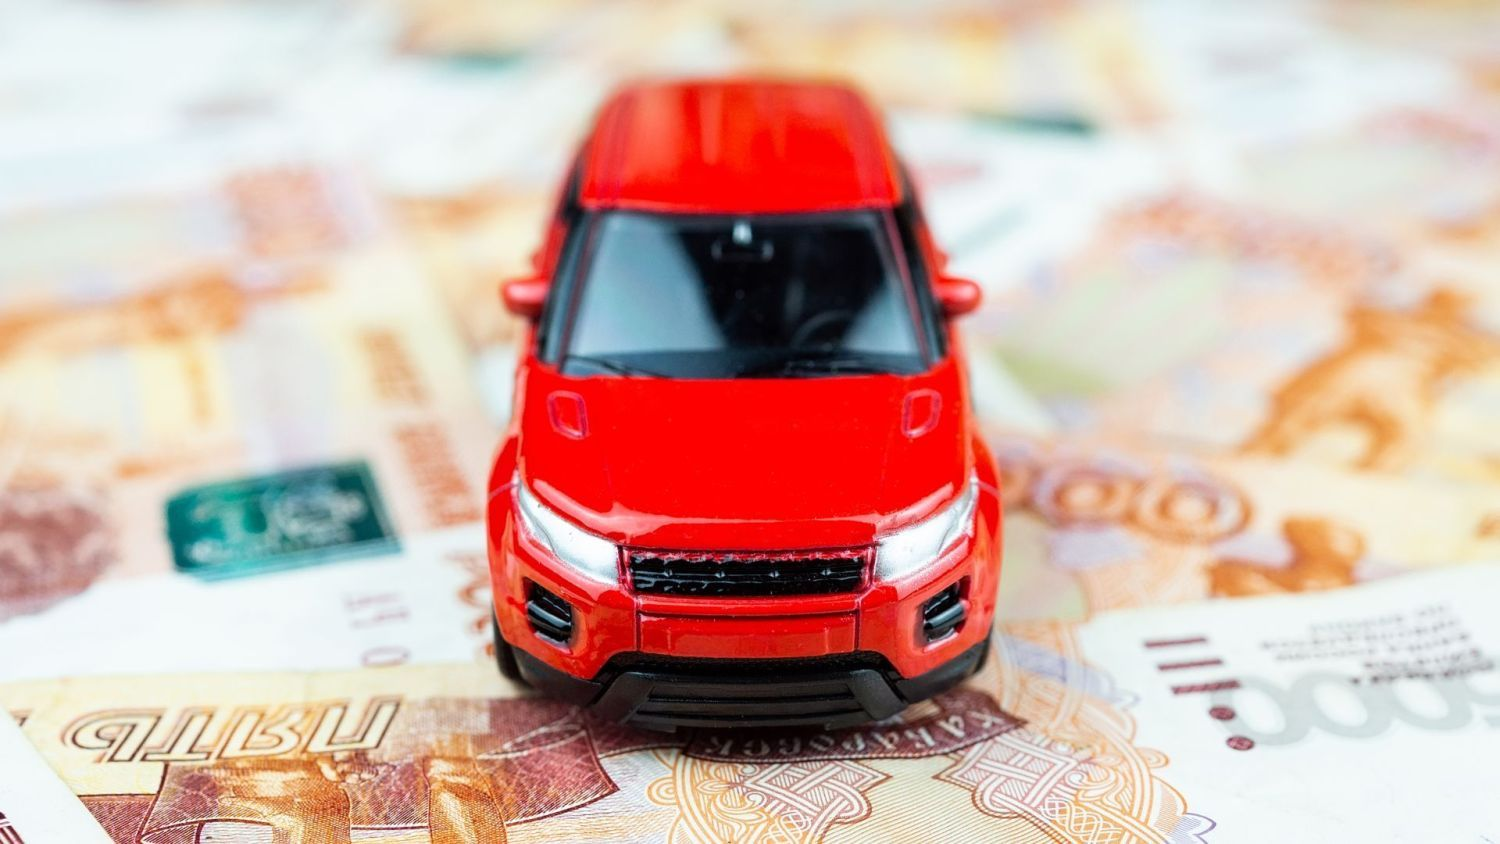 The cheapest places to insure a car in the UK in 2020